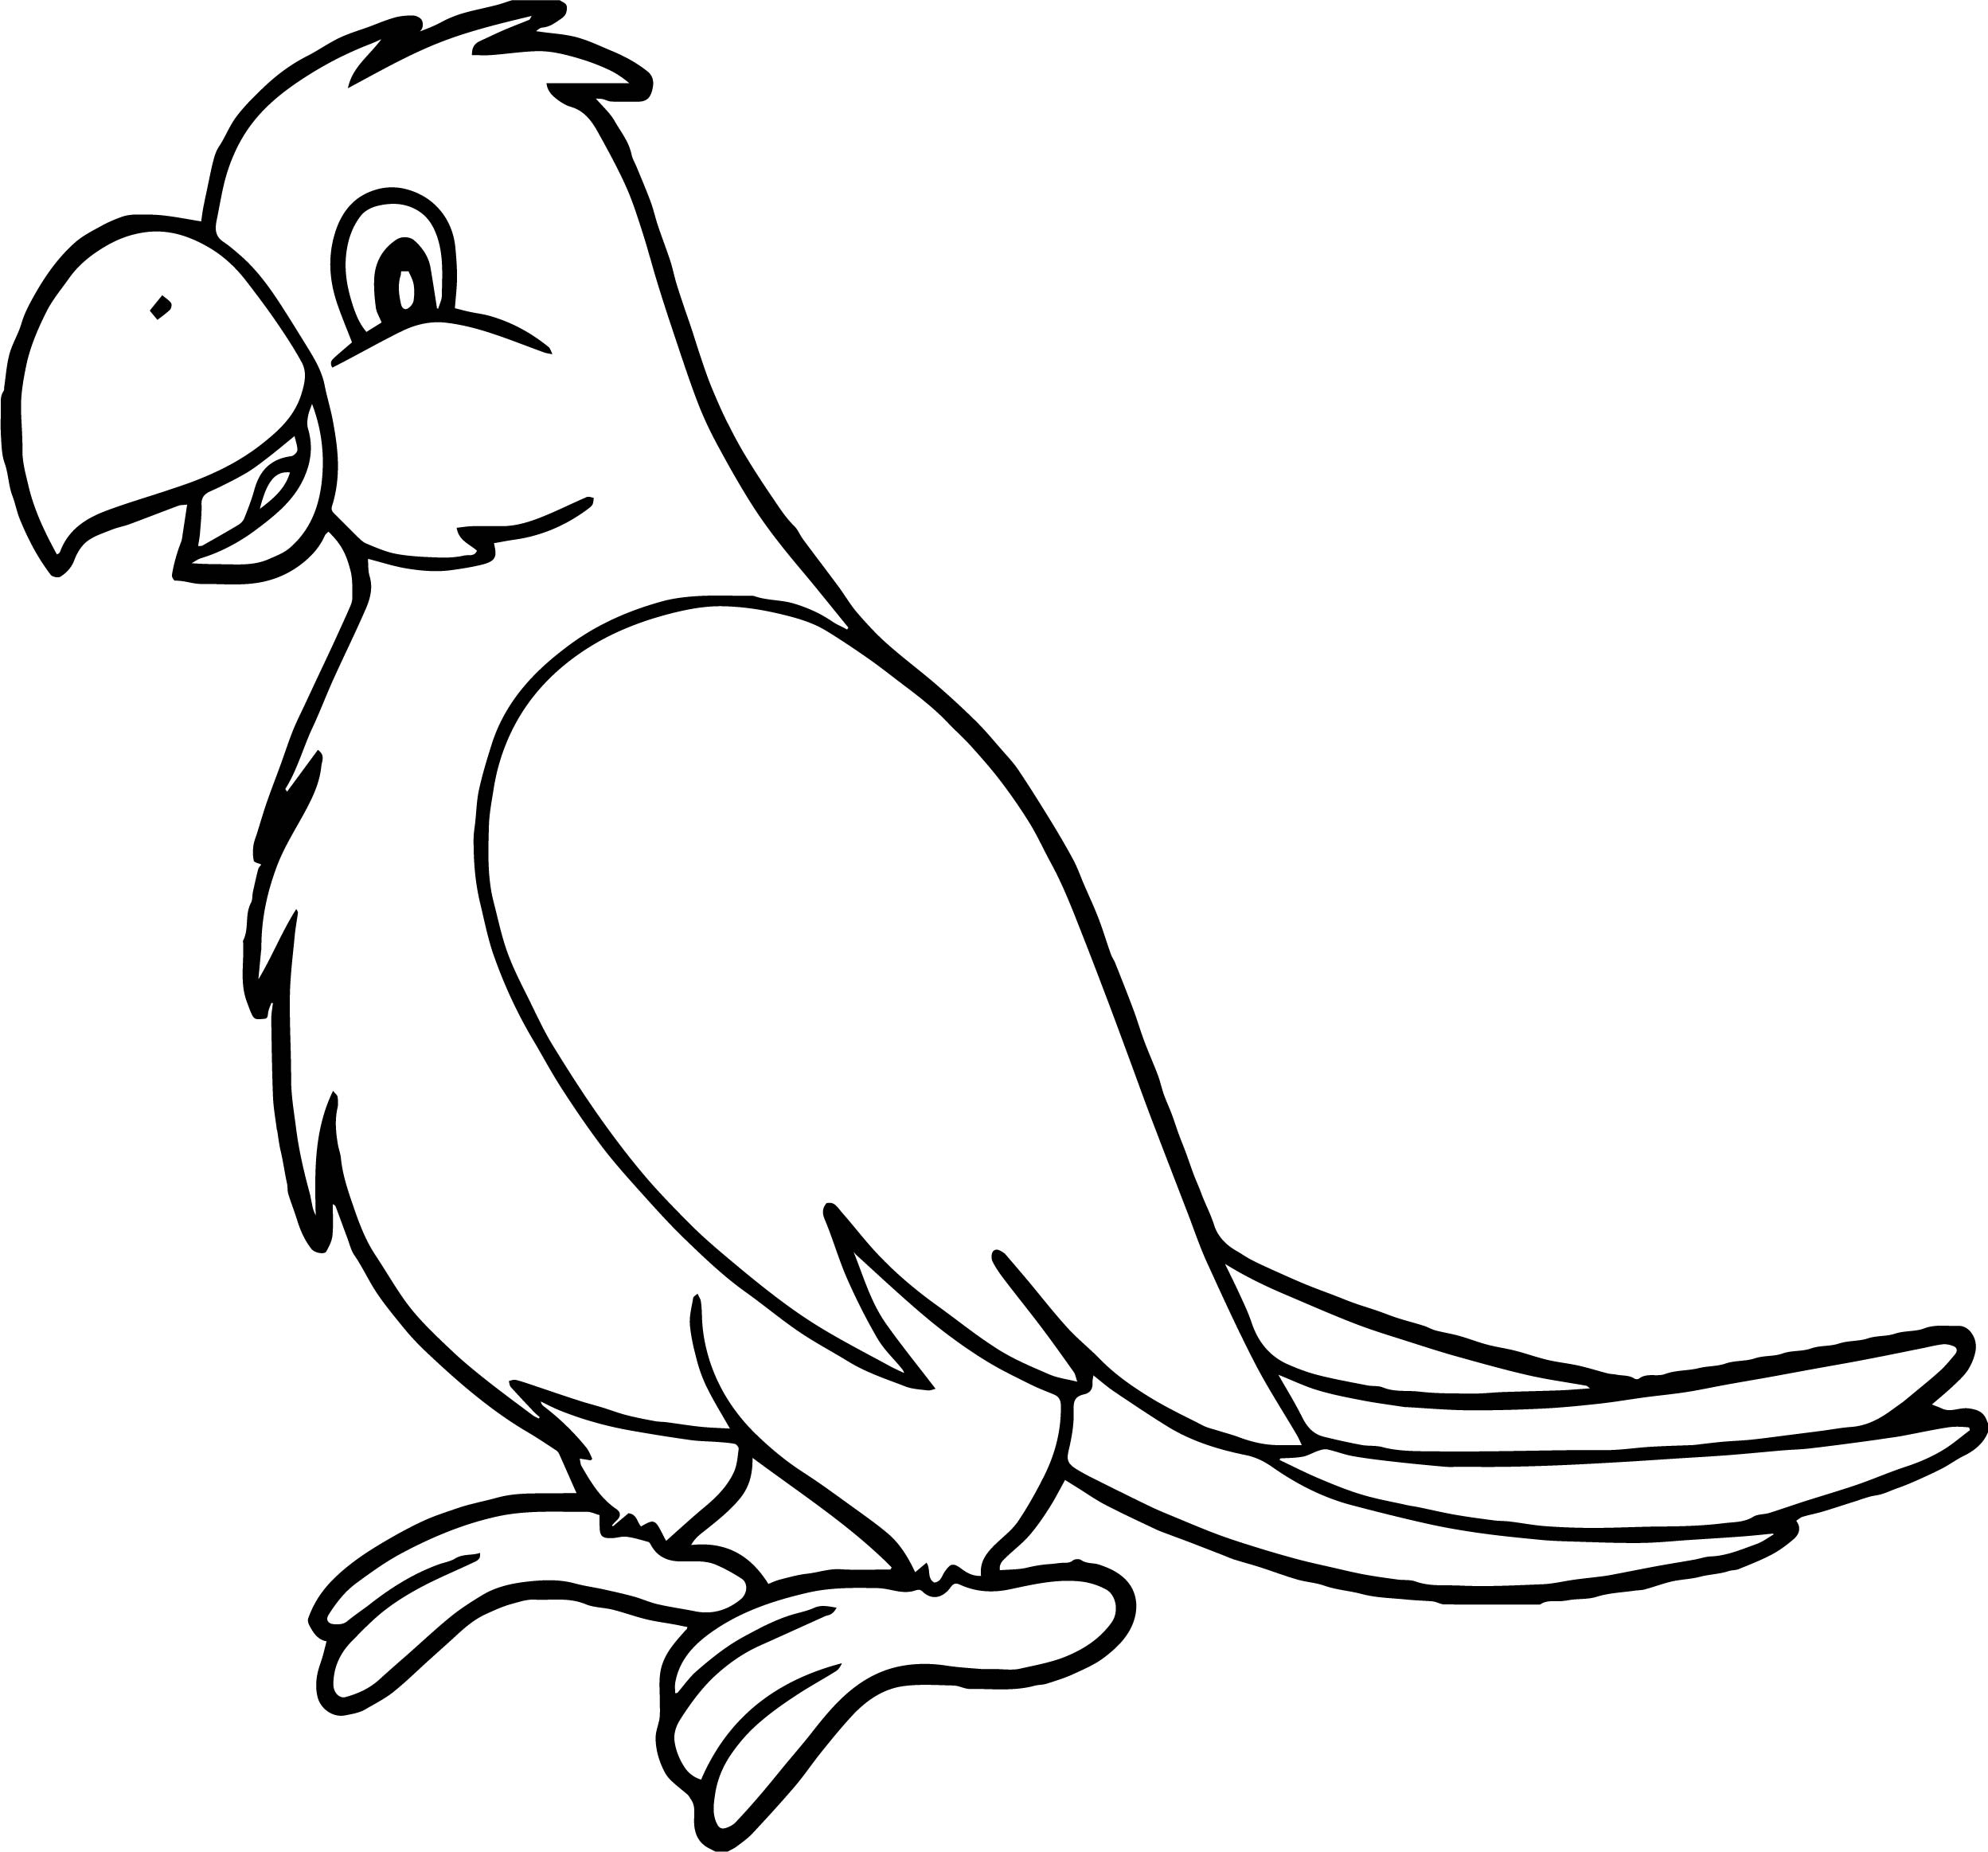 picture of parrot for colouring free printable parrot coloring pages for kids of picture colouring for parrot